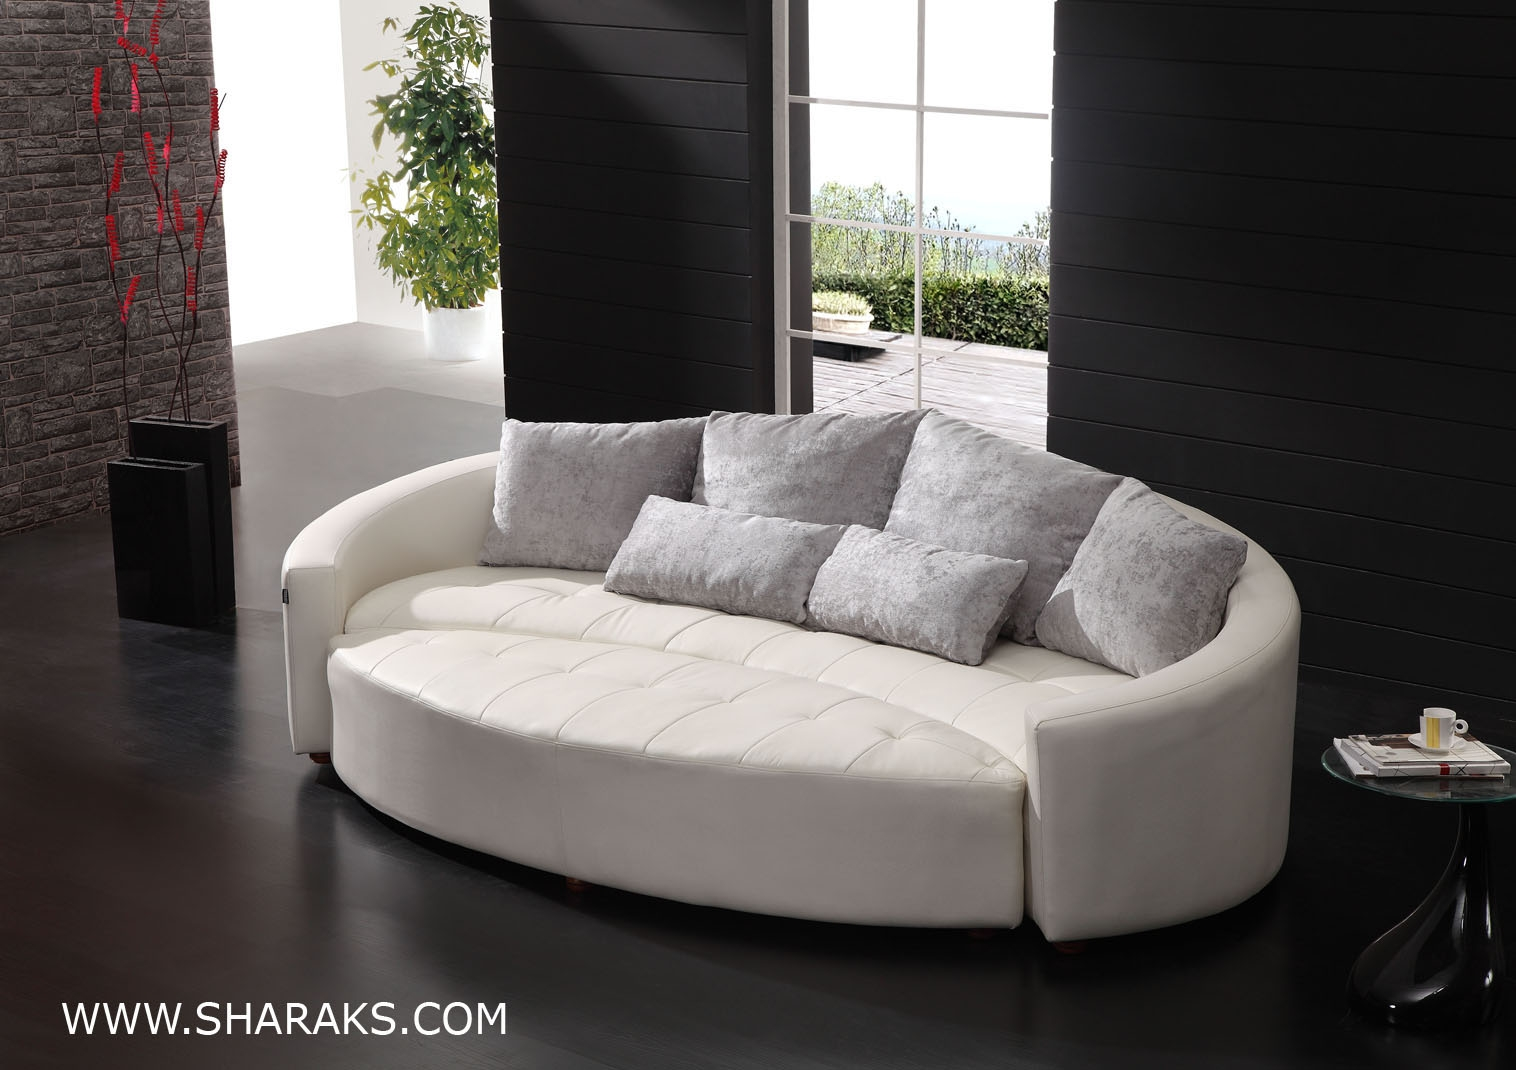 Stylish 1000 Images About Curved Couch Ideas On Pinterest Curved In Contemporary Curved Sofas (#10 of 12)